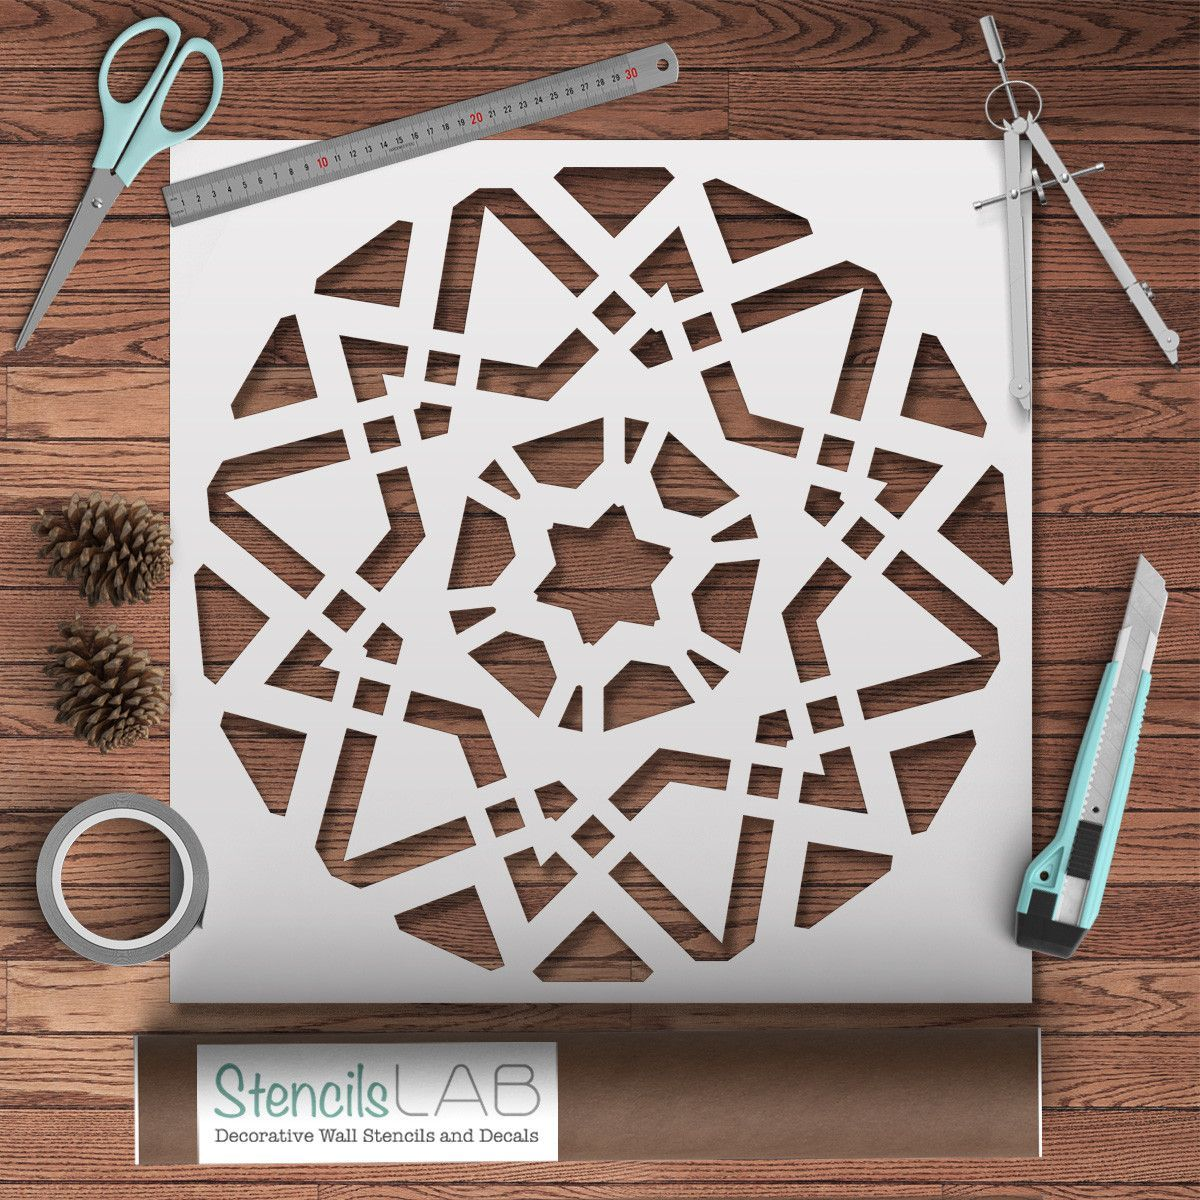 Geometric mandala stencil kaati pinterest mandala stencils geometric mandala stencil stencil for decor projects wall stencil amipublicfo Images